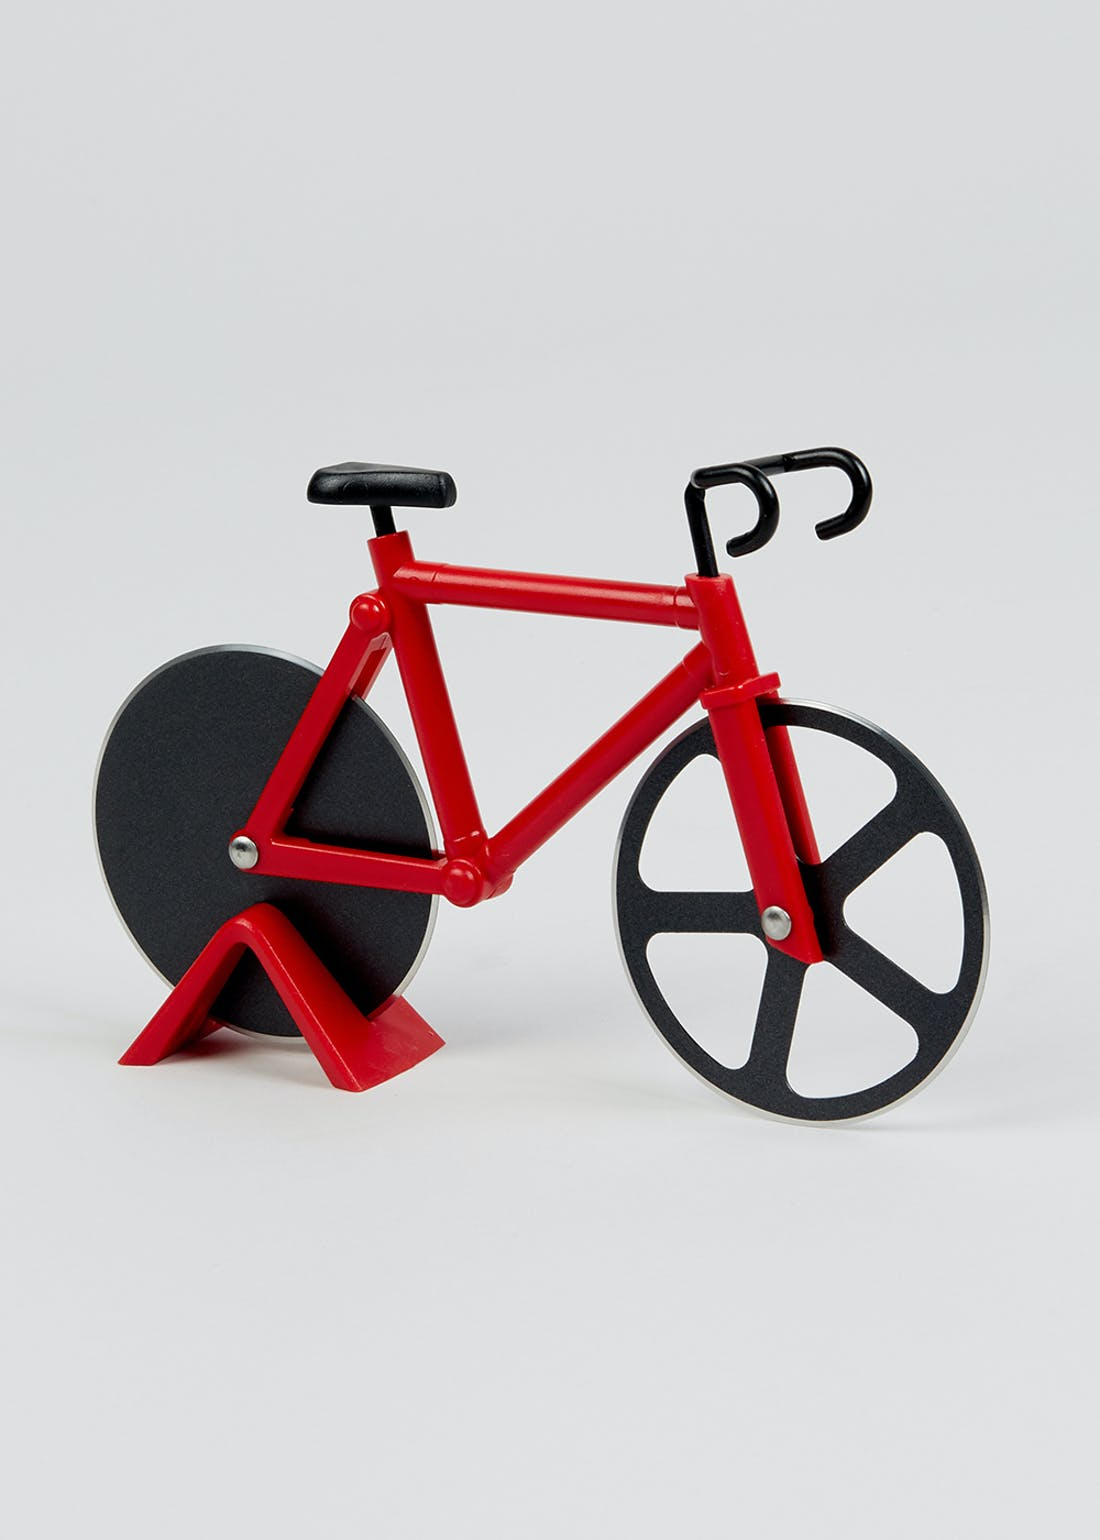 Bike Shaped Pizza Cutter (18.5cm x 11.5cm x 3.5cm)